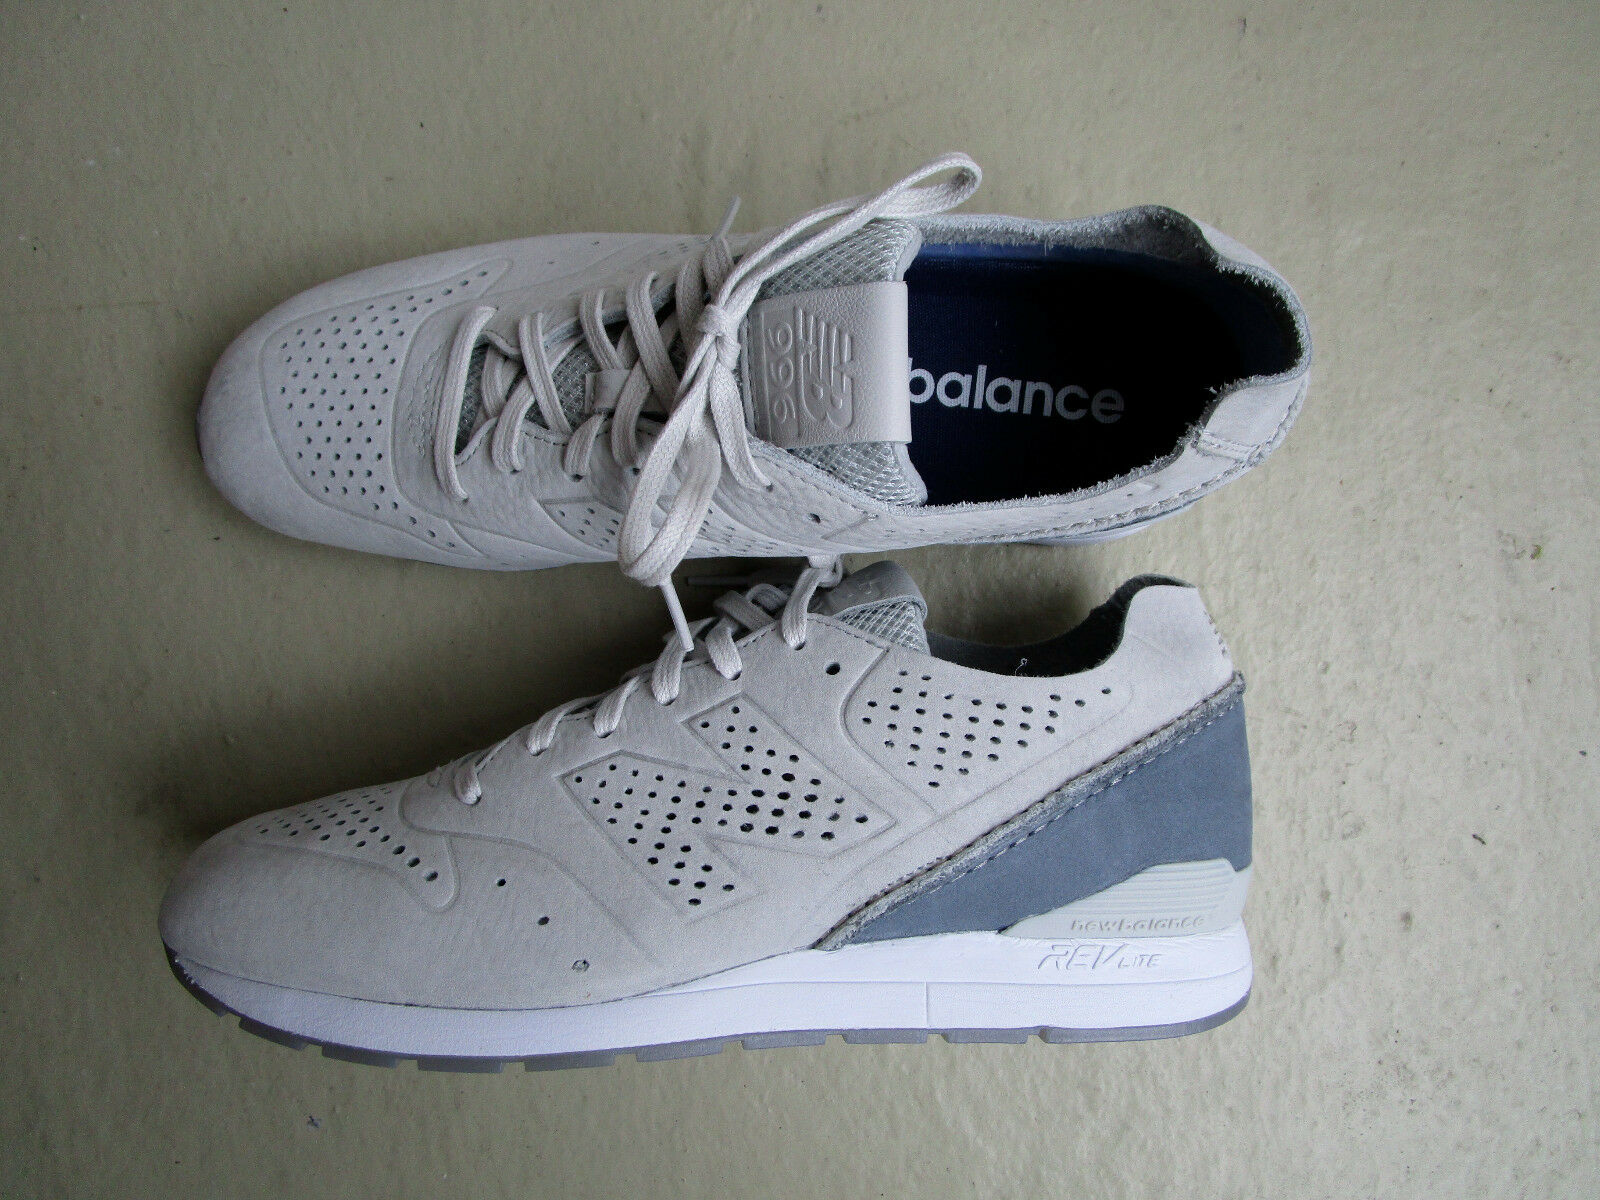 New Balance MRL 996 DF 46.5 Concrete